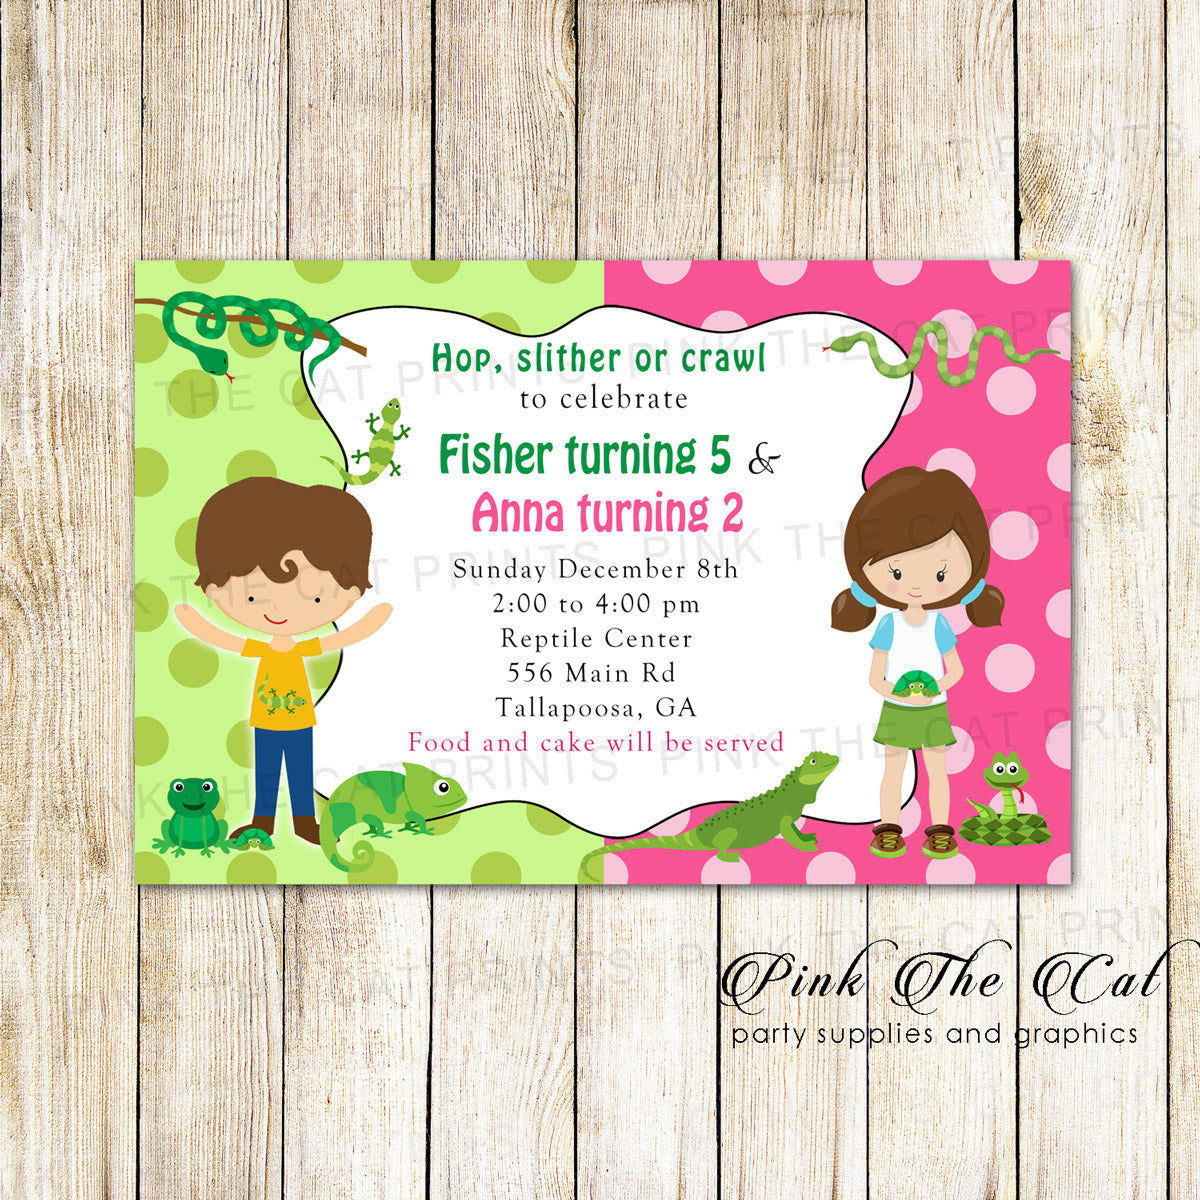 Reptile Snakes Kids Birthday Invitation Printable Pink The Cat